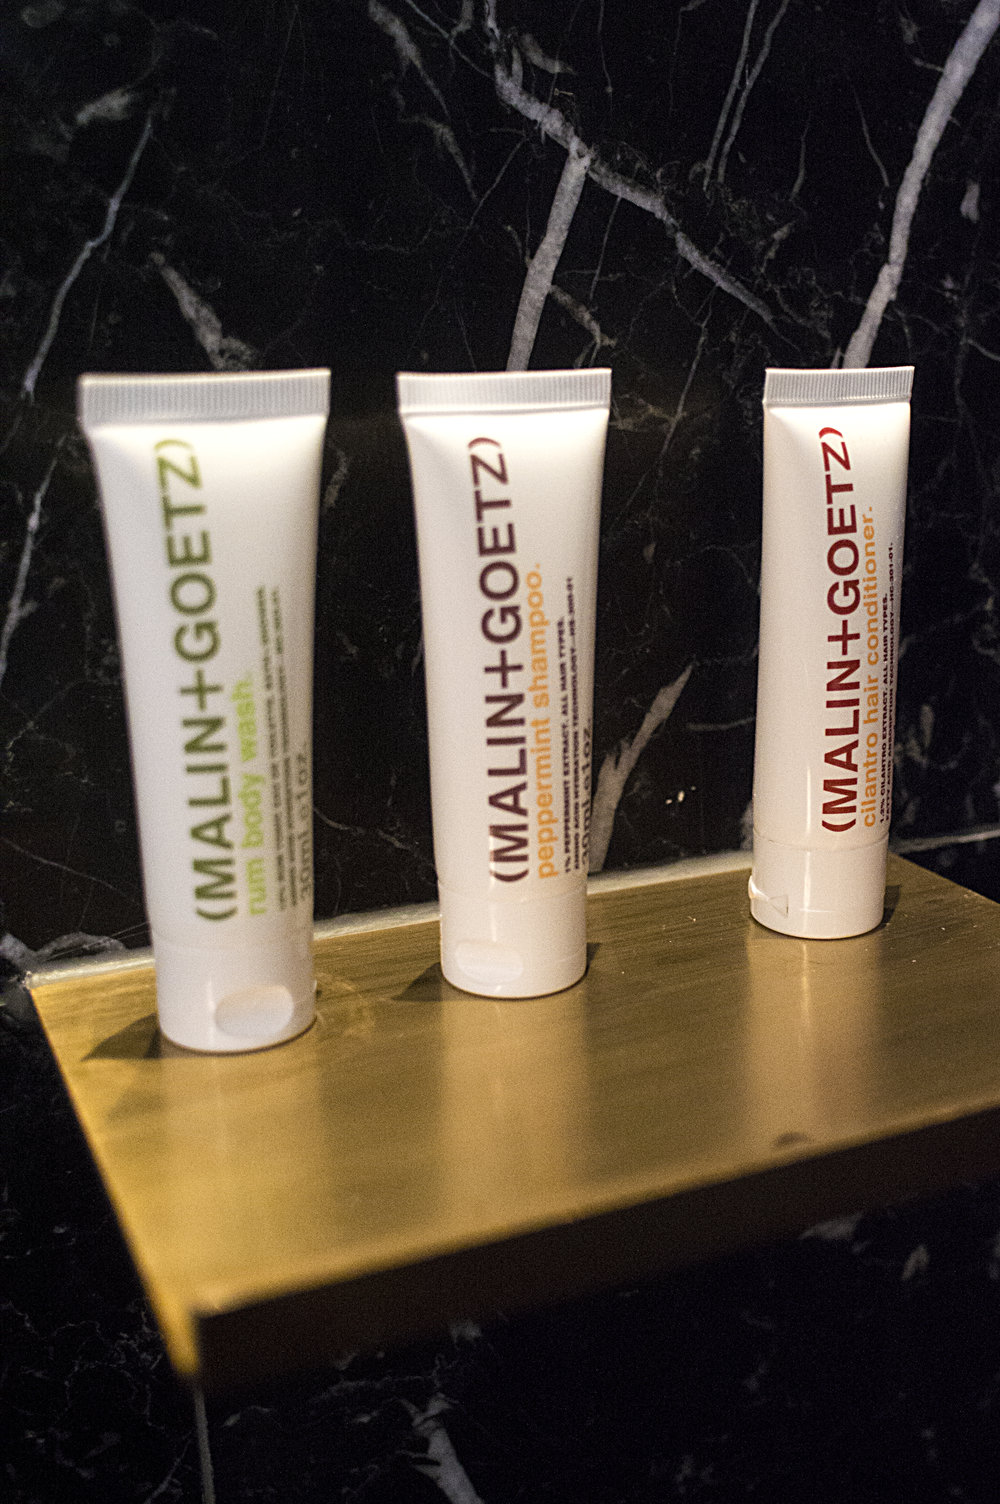 Each bathroom comes with these lovely Malin + Goetz products, which are absolutely heavenly.